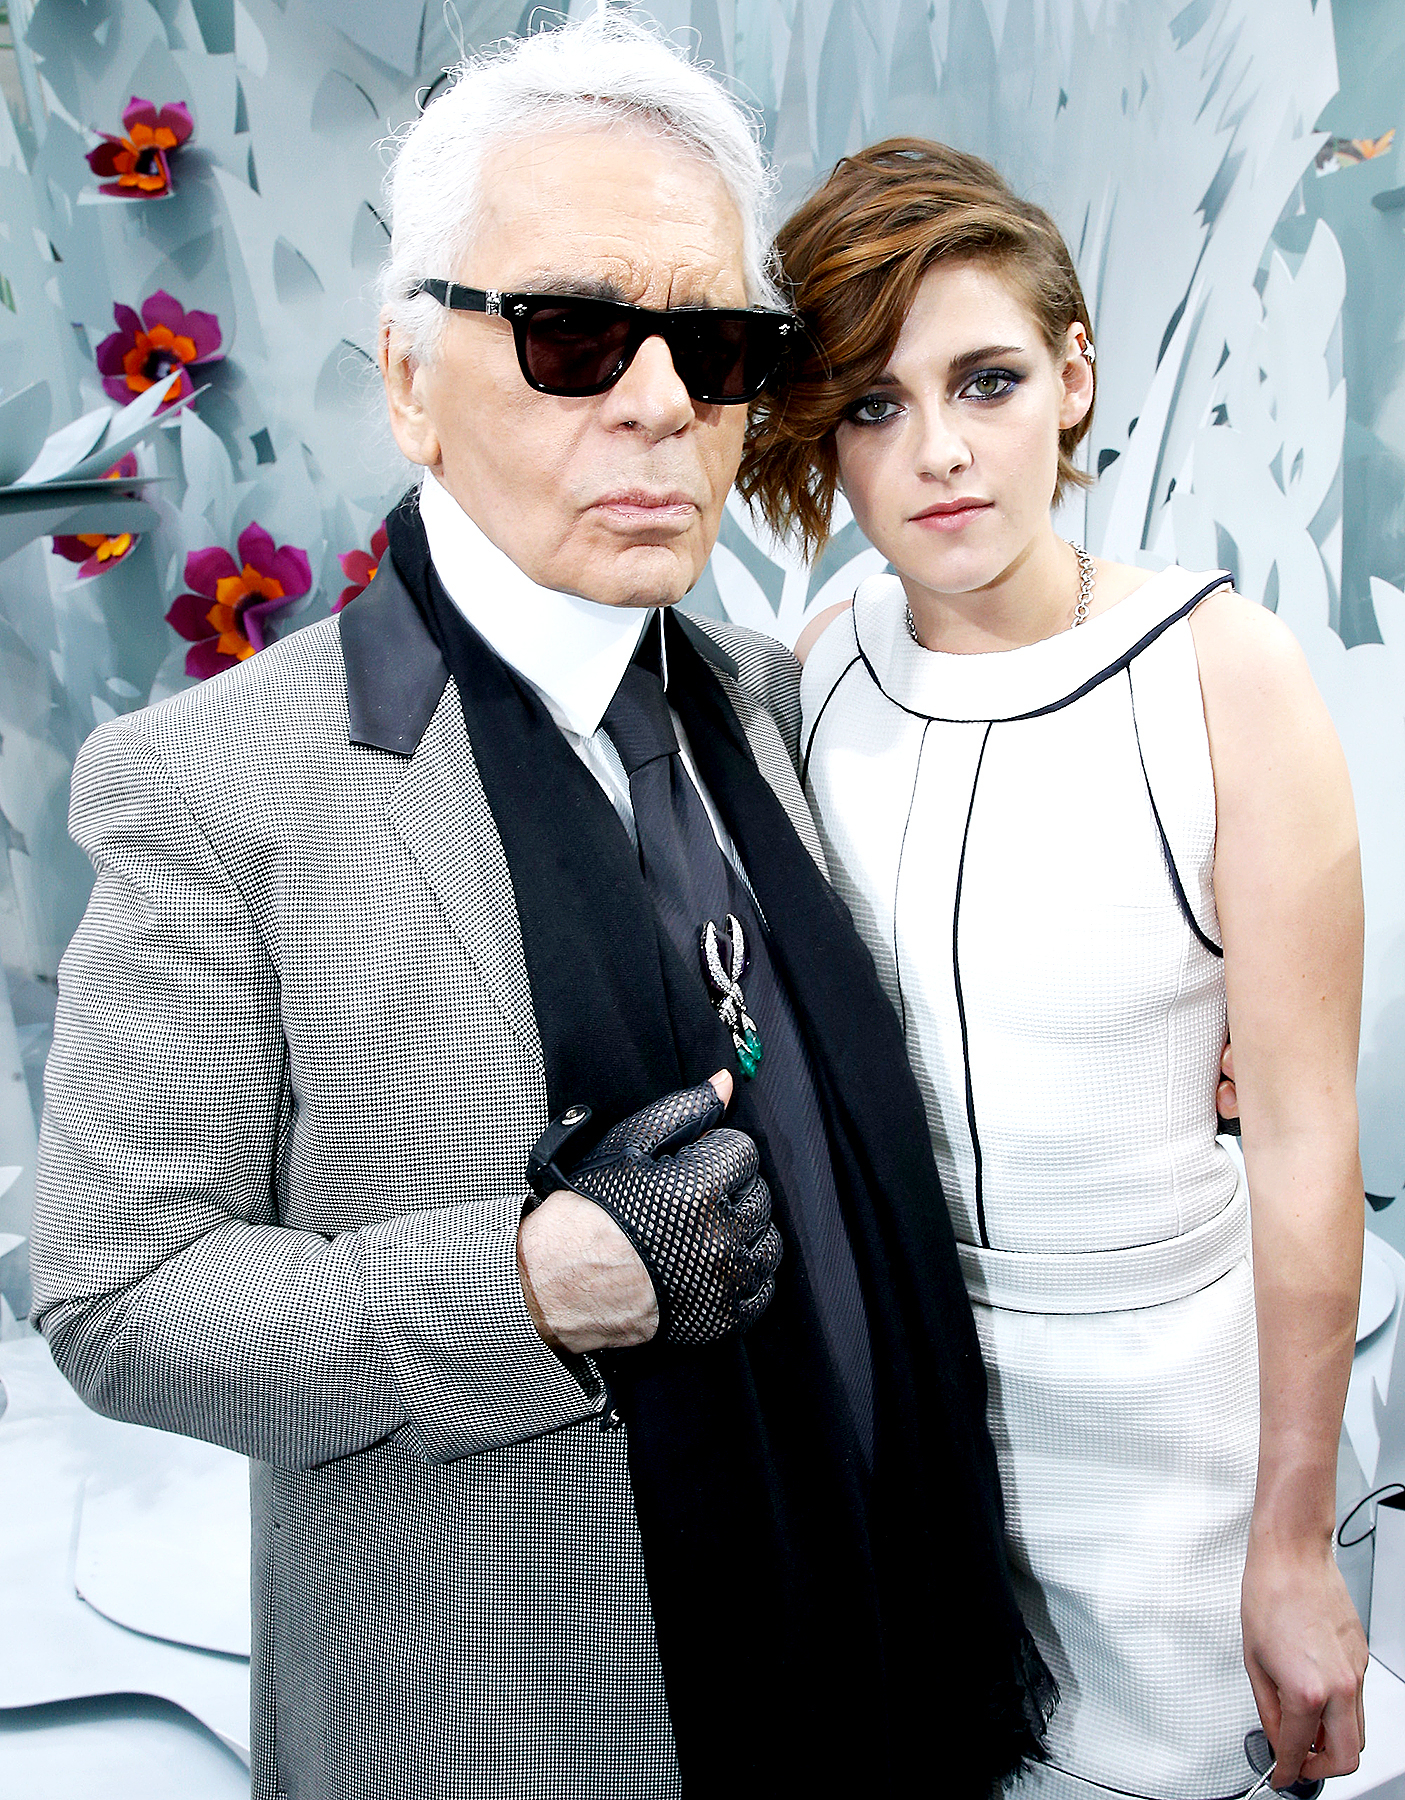 To acquire 10 didnt things know karl lagerfeld picture trends